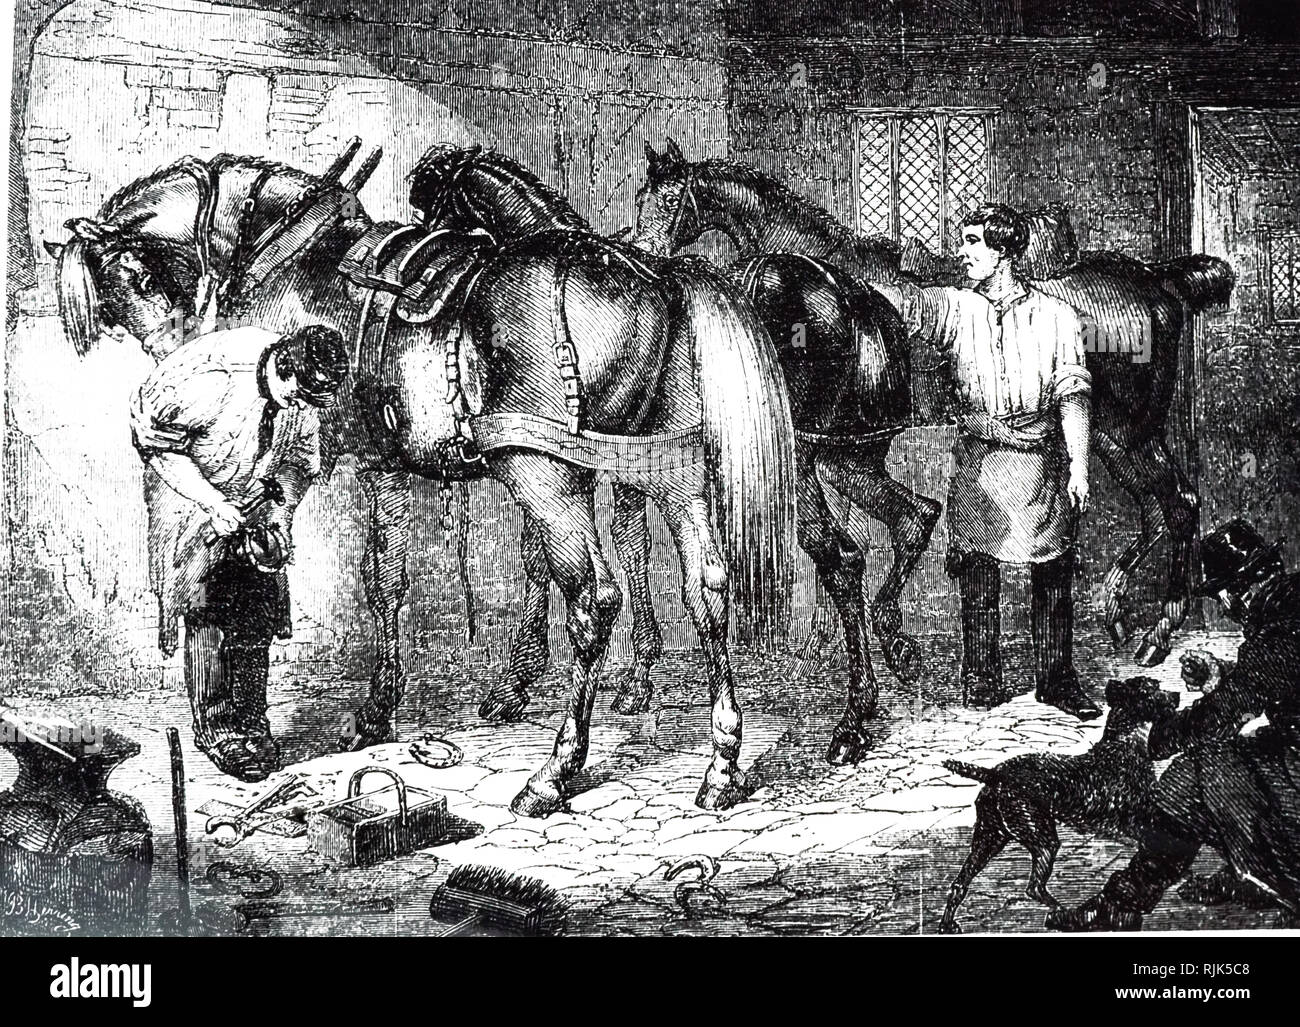 An engraving depicting the process of roughing the horses' shoes for the frosty weather. Dated 19th century - Stock Image